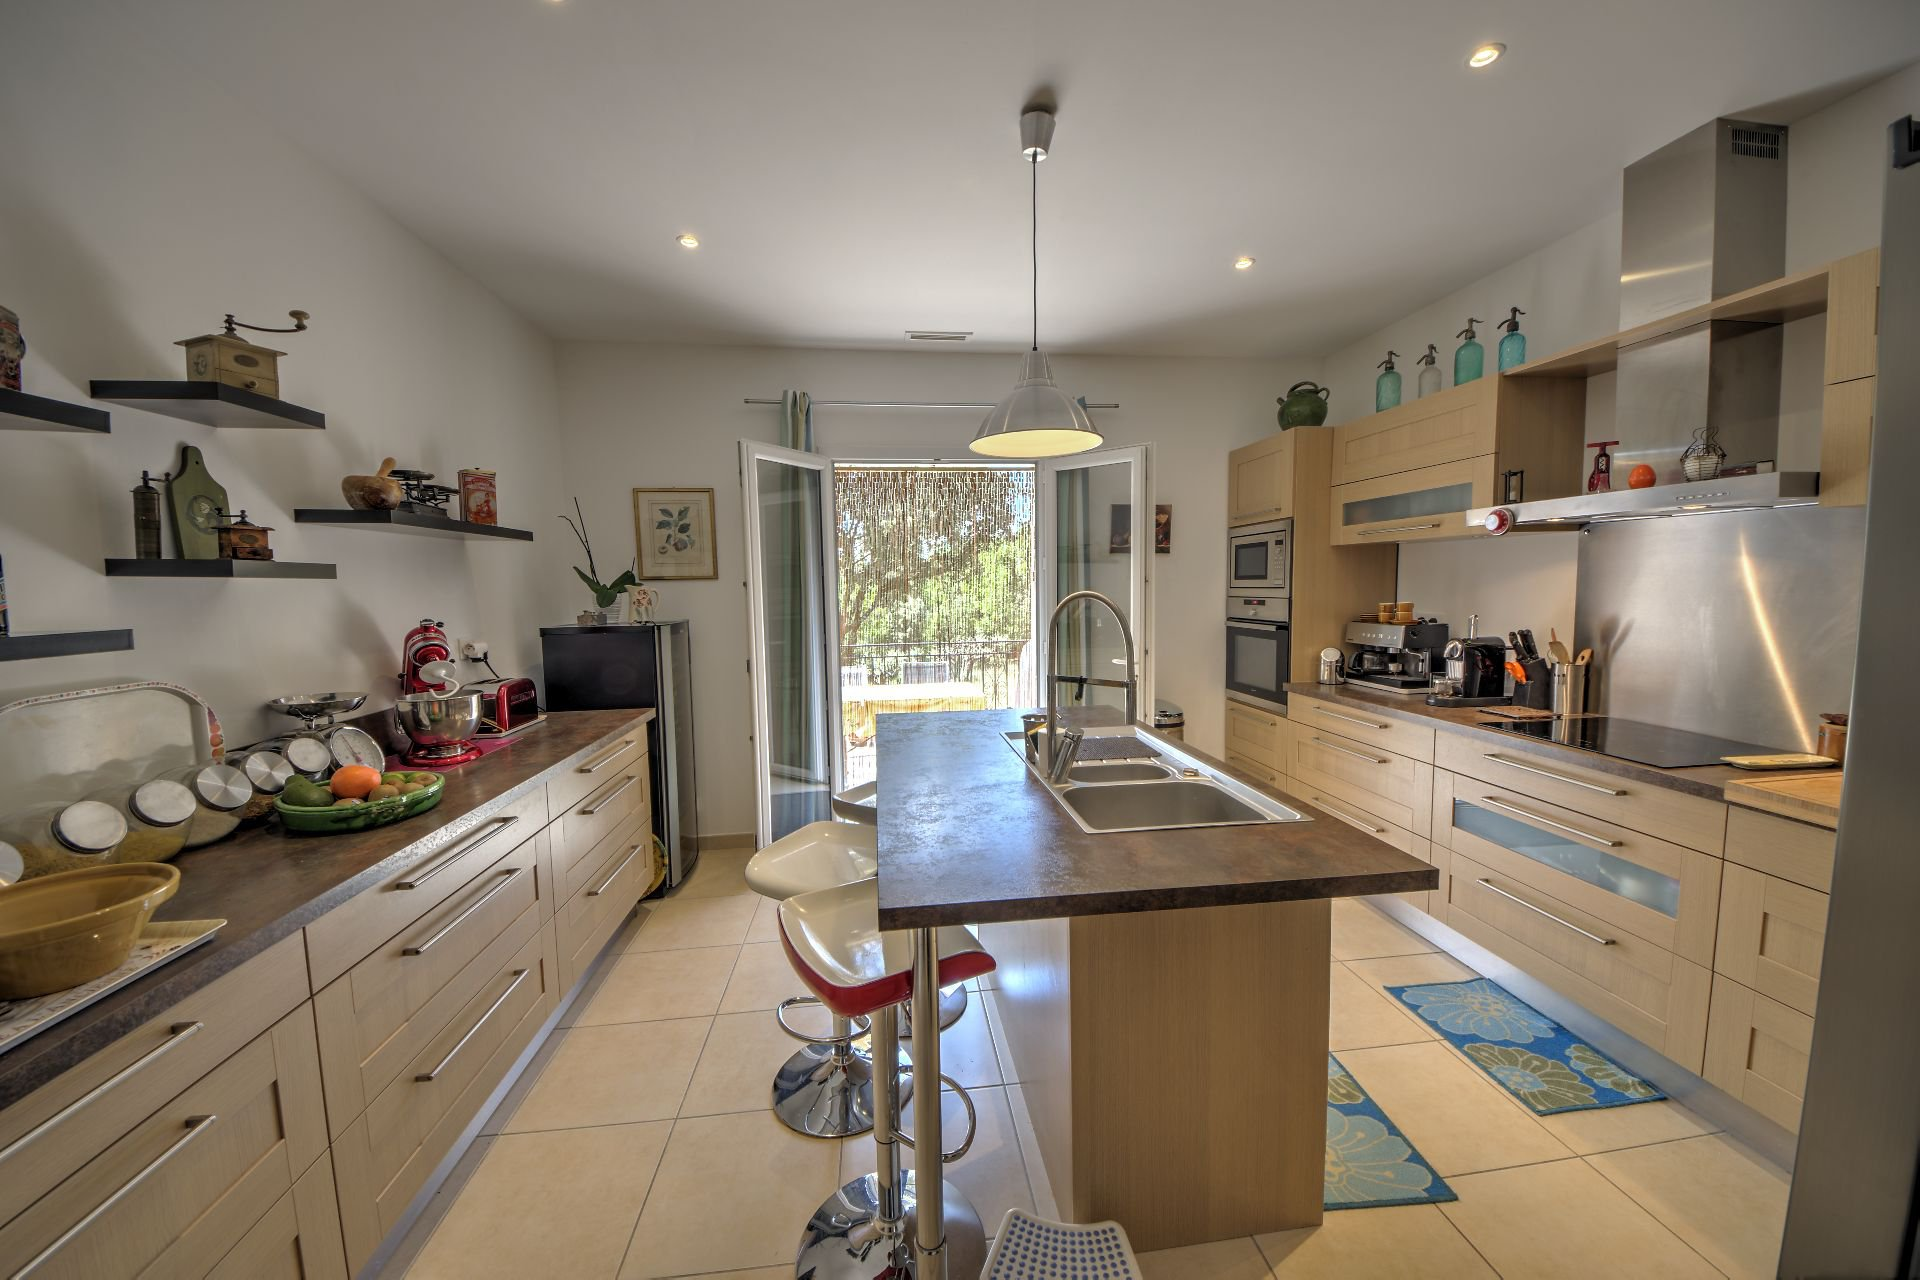 Modern kitchen in this quality and bright house with beautiful volumes in Moissac Bellevue Var Provence